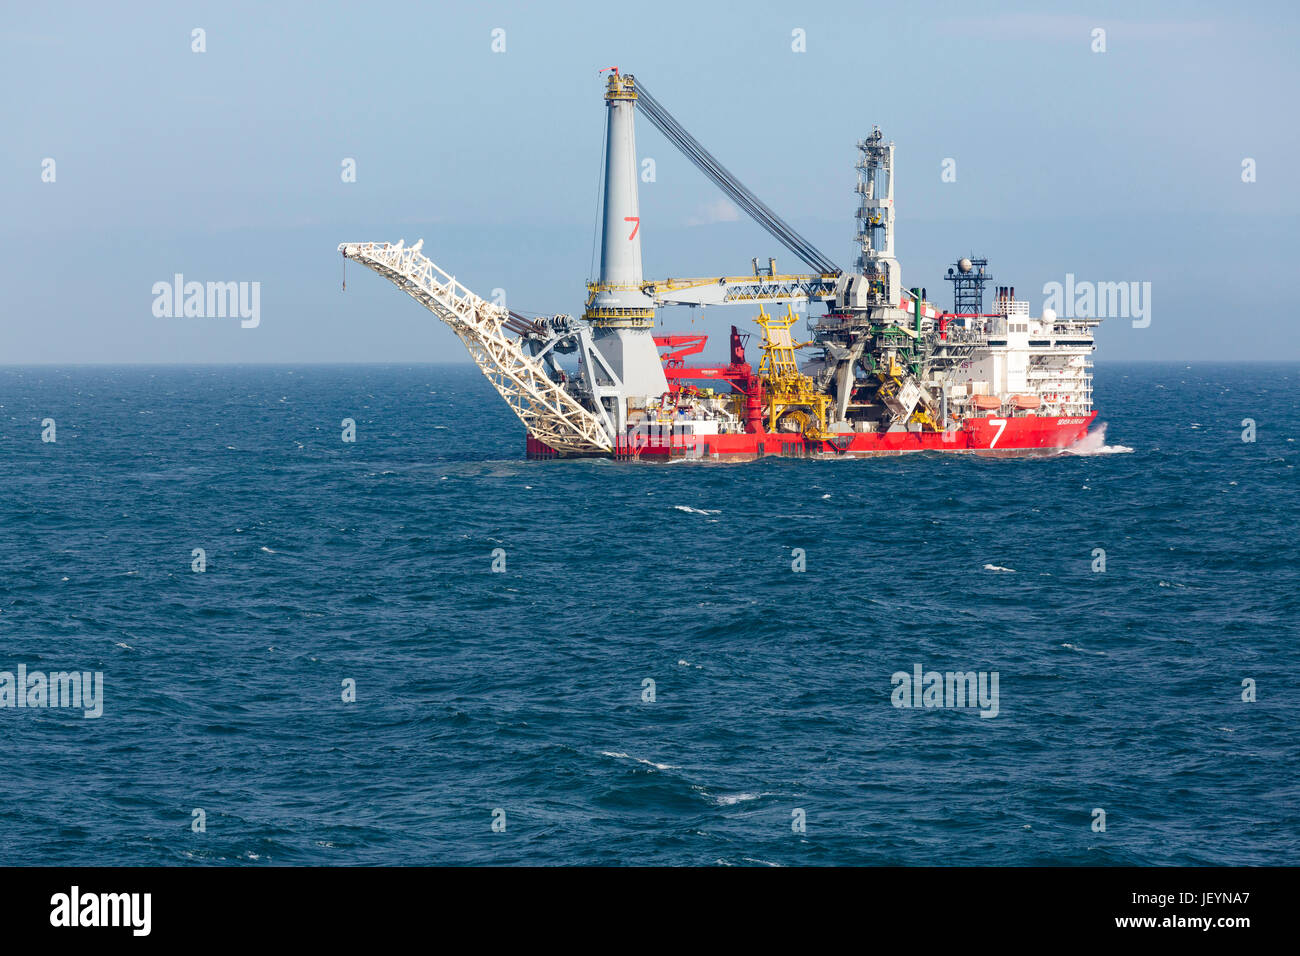 The Seven Borealis pipelay and heavy lift vessel and is capable of operating in the worldÕs harshest environments. - Stock Image